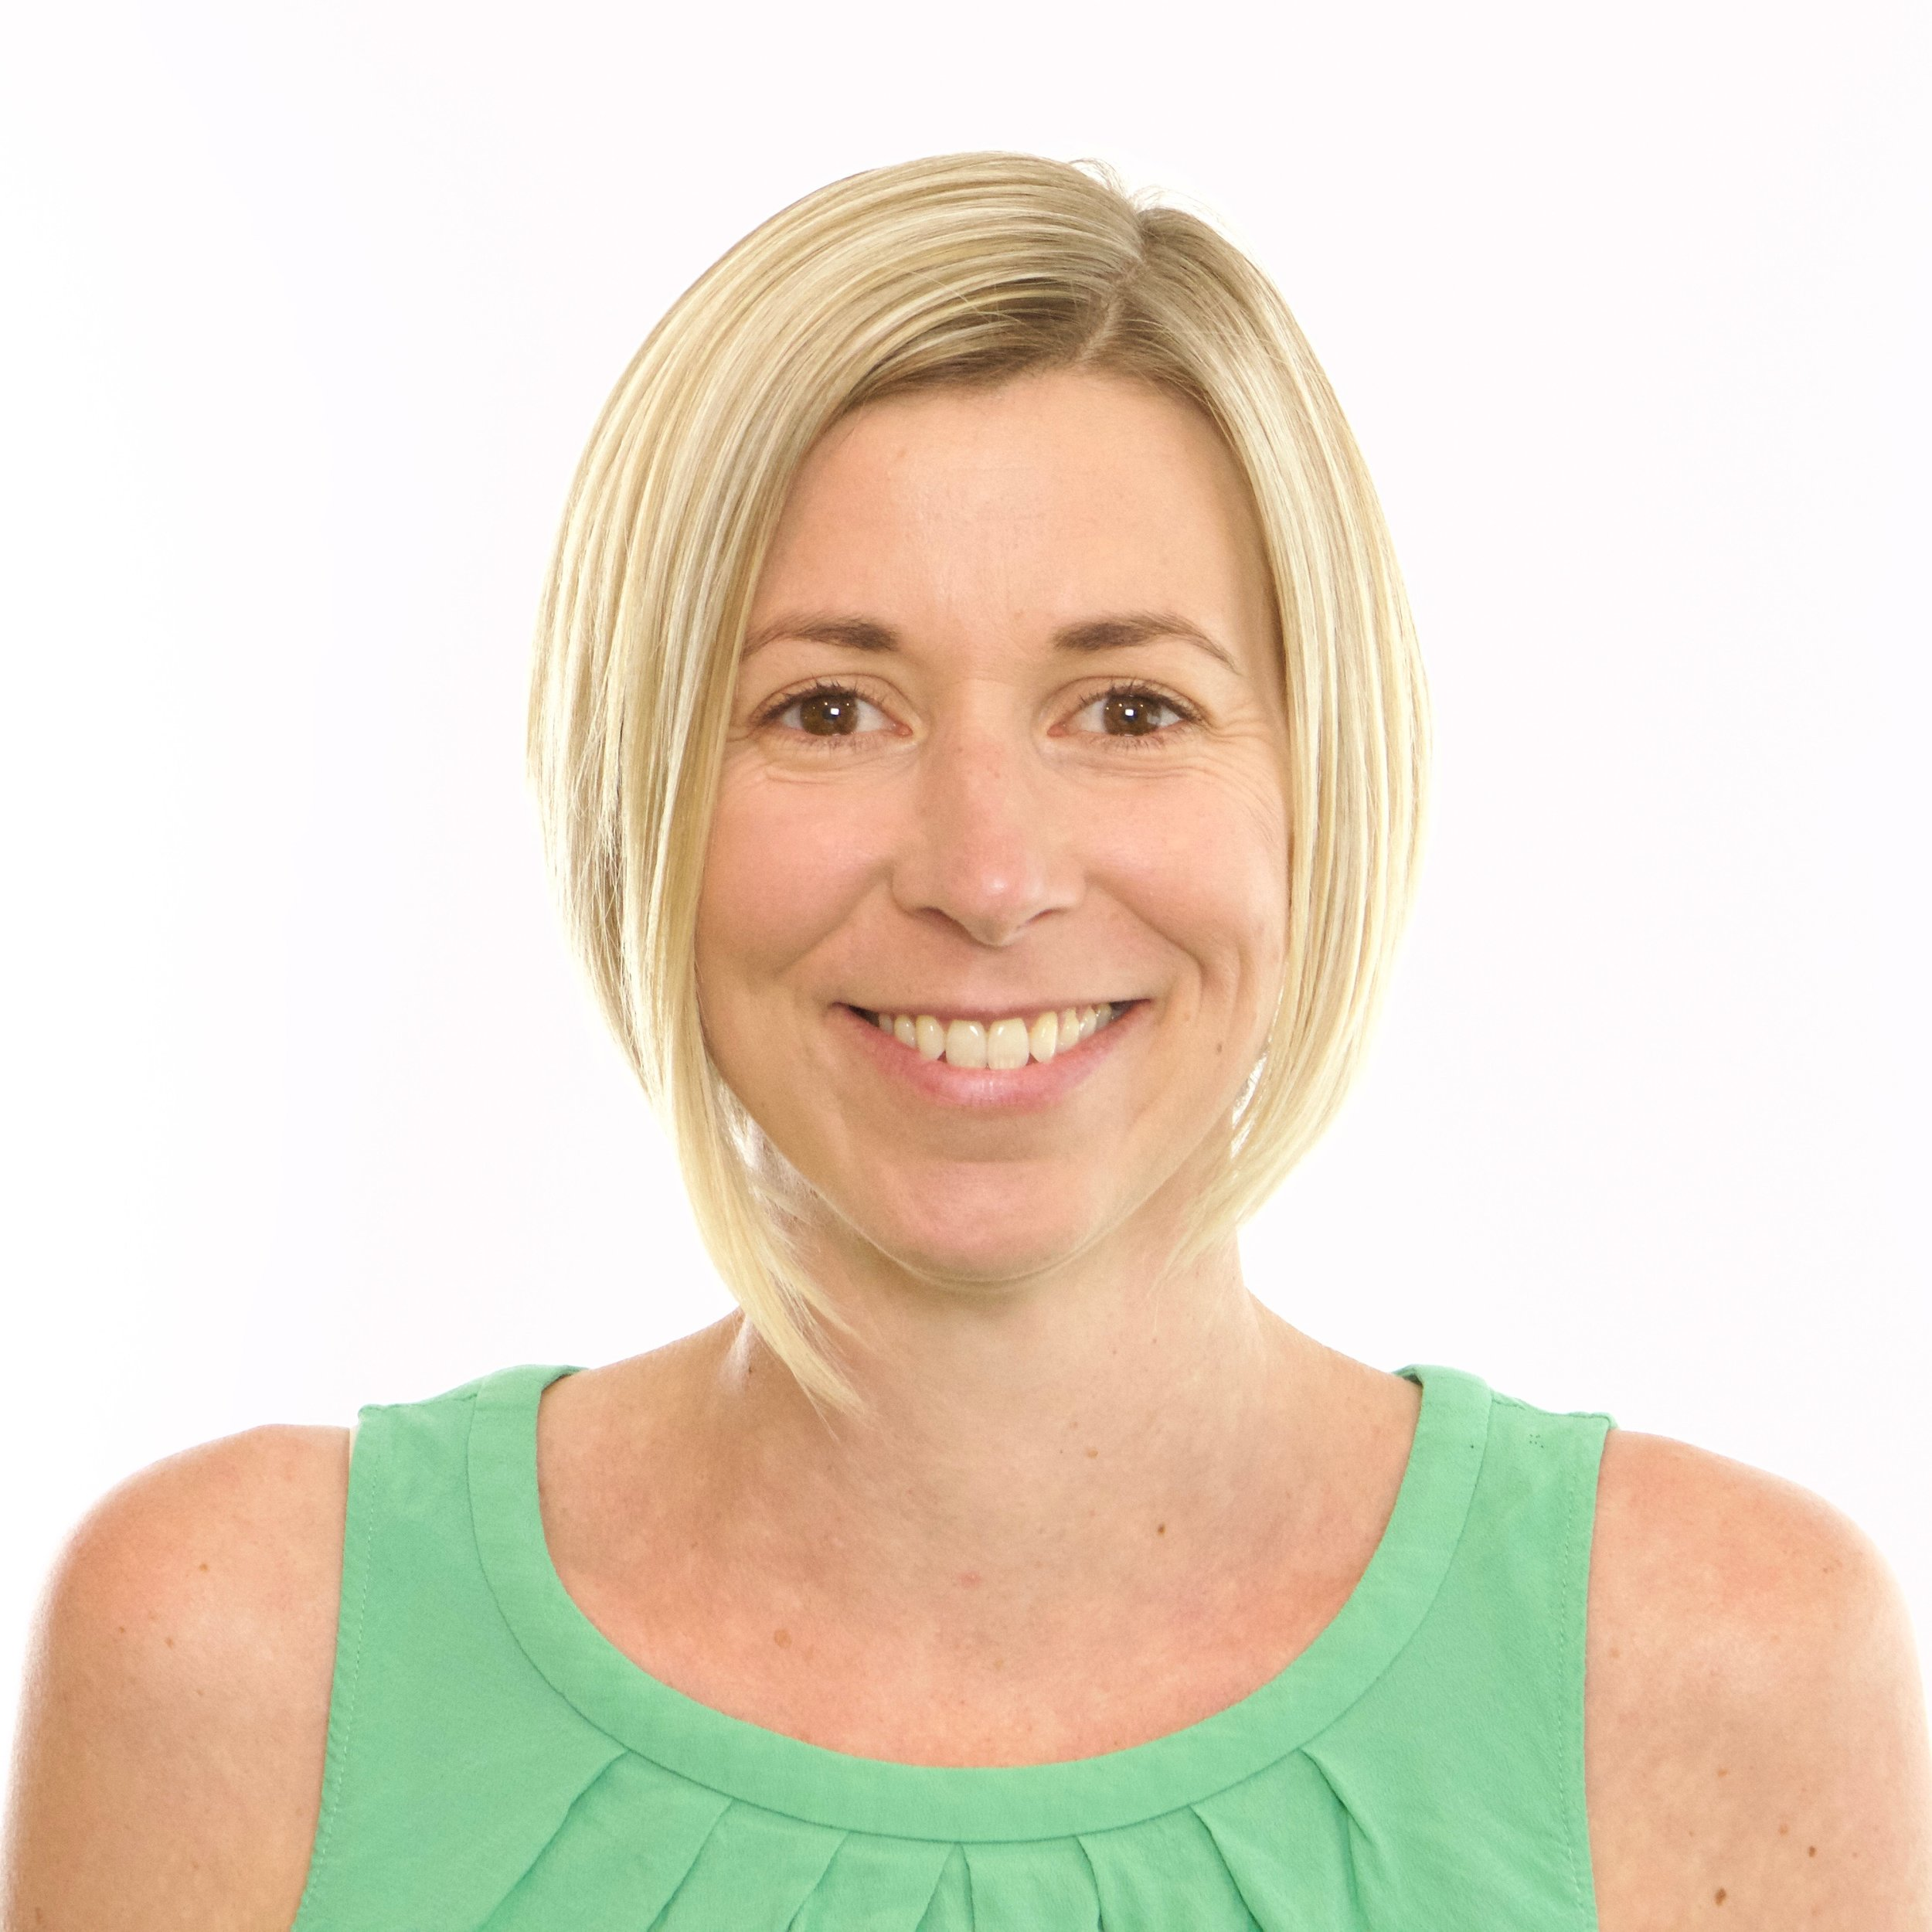 Lucy Becker   Hi I'm Lucy - nice to meet you!  Before I started working with Ben in 2013 I worked for several multi-billion dollar organisations, travelling around the world and organising stuff. My passion has always been start-ups and small businesses though; I love helping companies share their stories with the world.  So in 2012 I set up Spotty Octopus with the aim of helping businesses get rid of the jargon & corporate speak and adding a human element to business stories. Another part of Spotty was growing and nurturing communities for companies online.  And, hopefully, that's how I help Ben and GameDev.tv – organising stuff, writing the non-techie bits online and helping you guys where I can